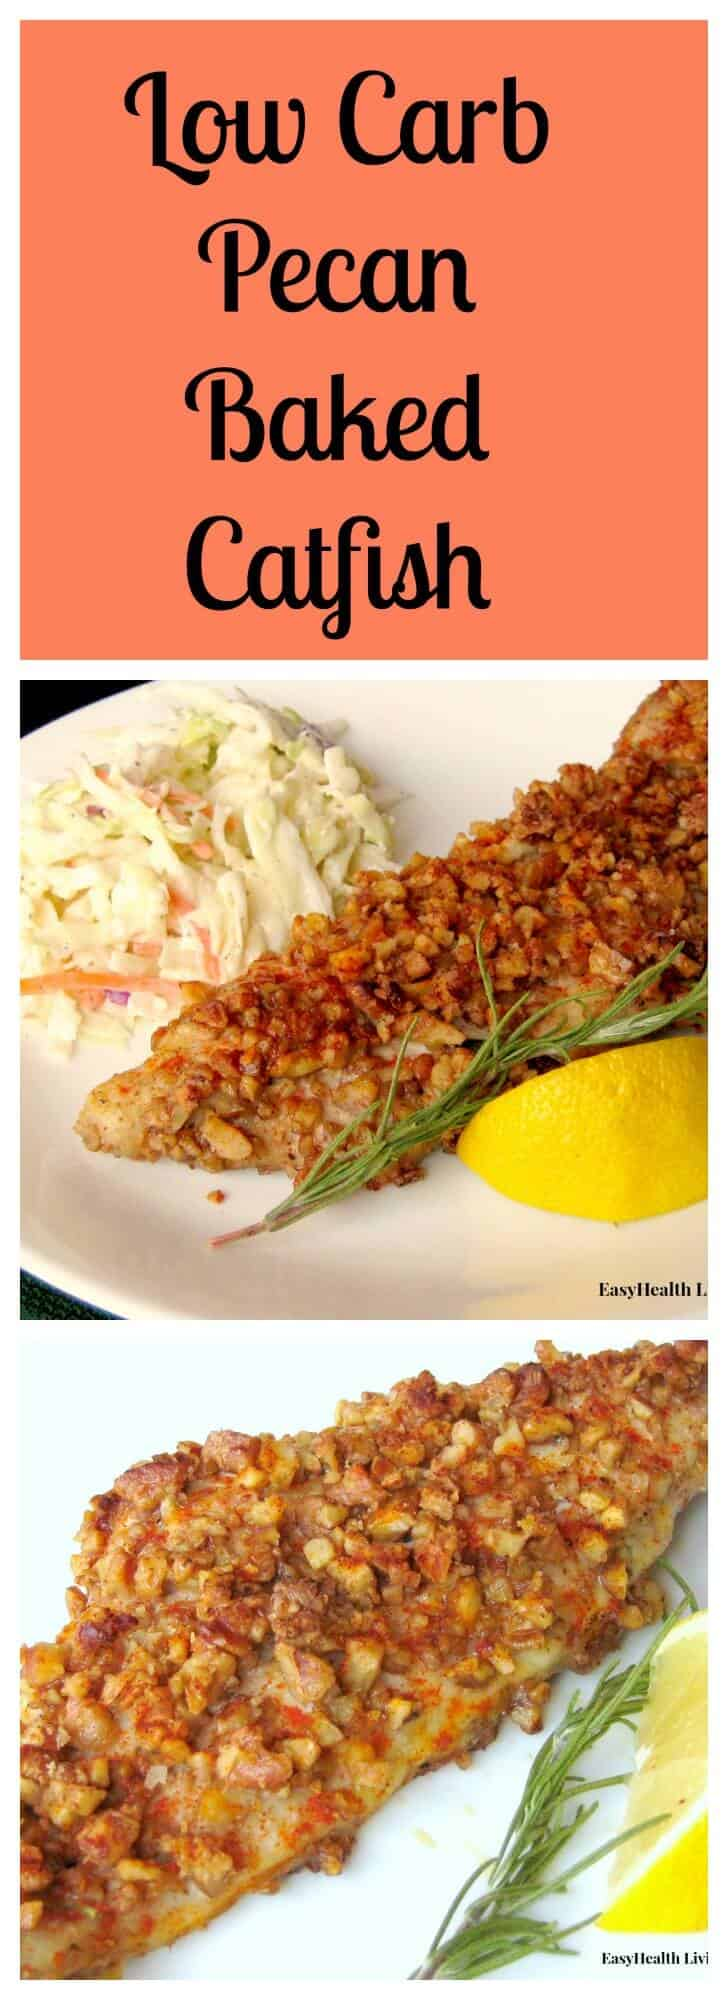 Catfish baked with a batter of pecans and seasonings makes a delicious low carb entree.  Serve with your favorite salad or slaw. #bakedcatfish #lowcarb